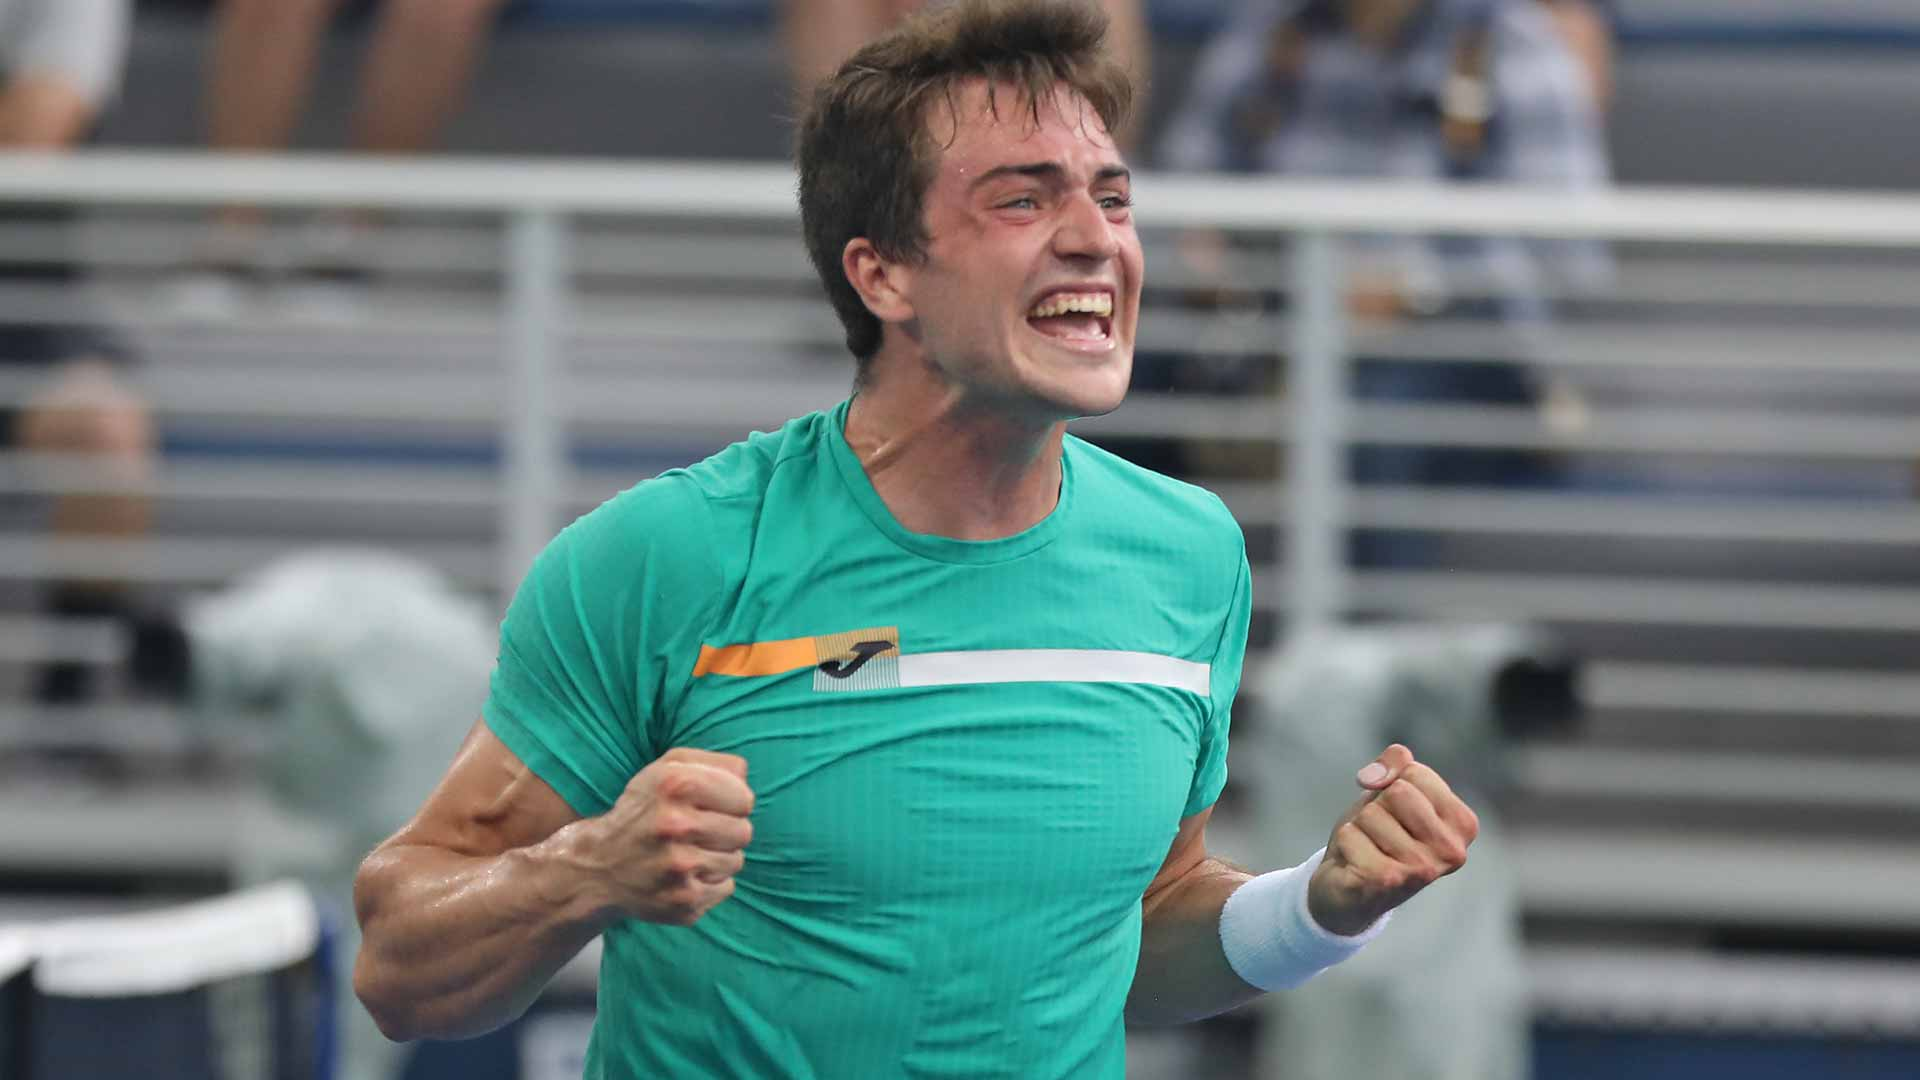 Spain's Pedro Martinez celebrates his big win against Tommy Paul on Wednesday at US Open qualifying.